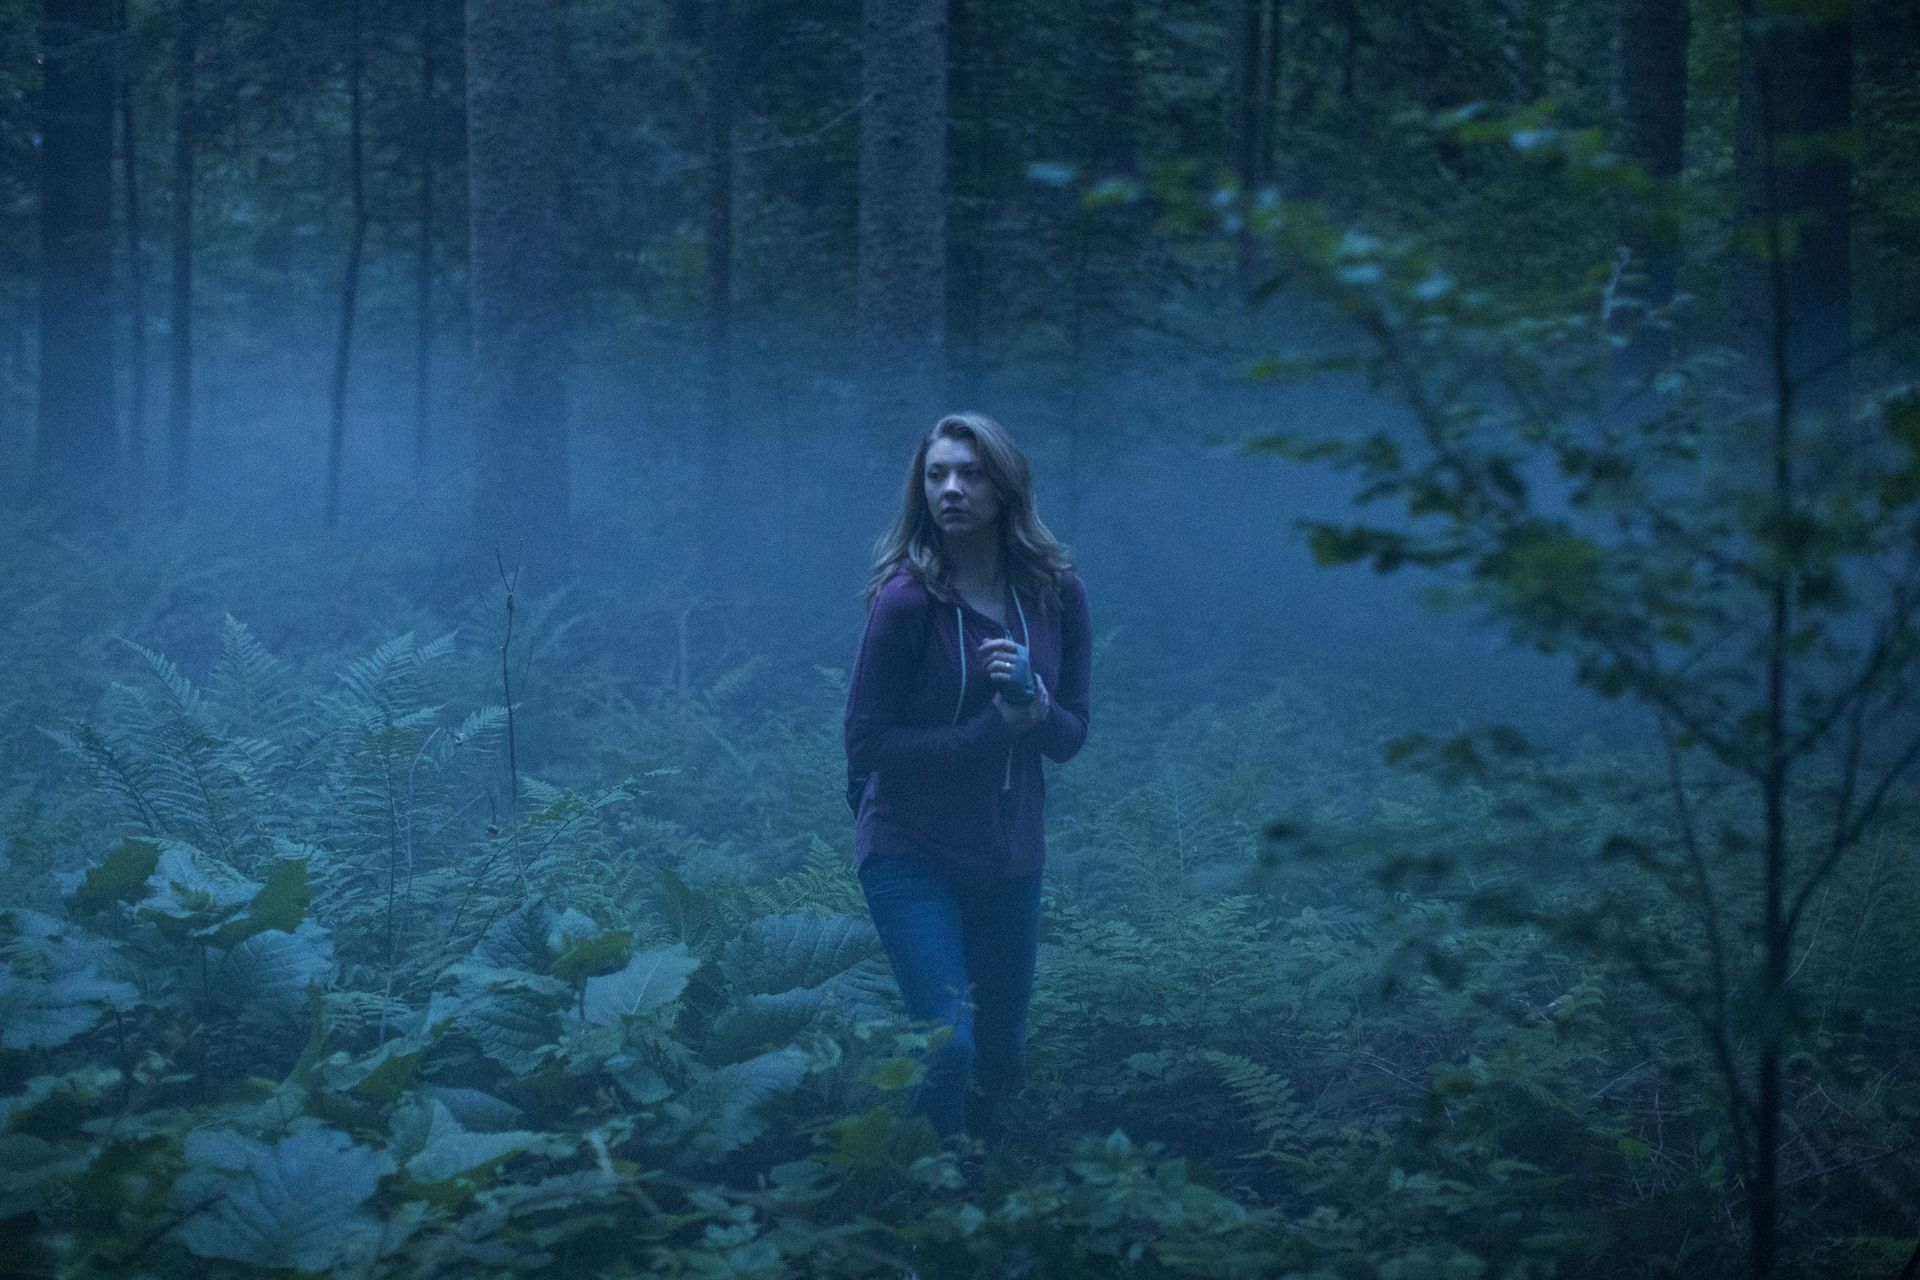 Natalie Dormer in the Aokigahara Forest